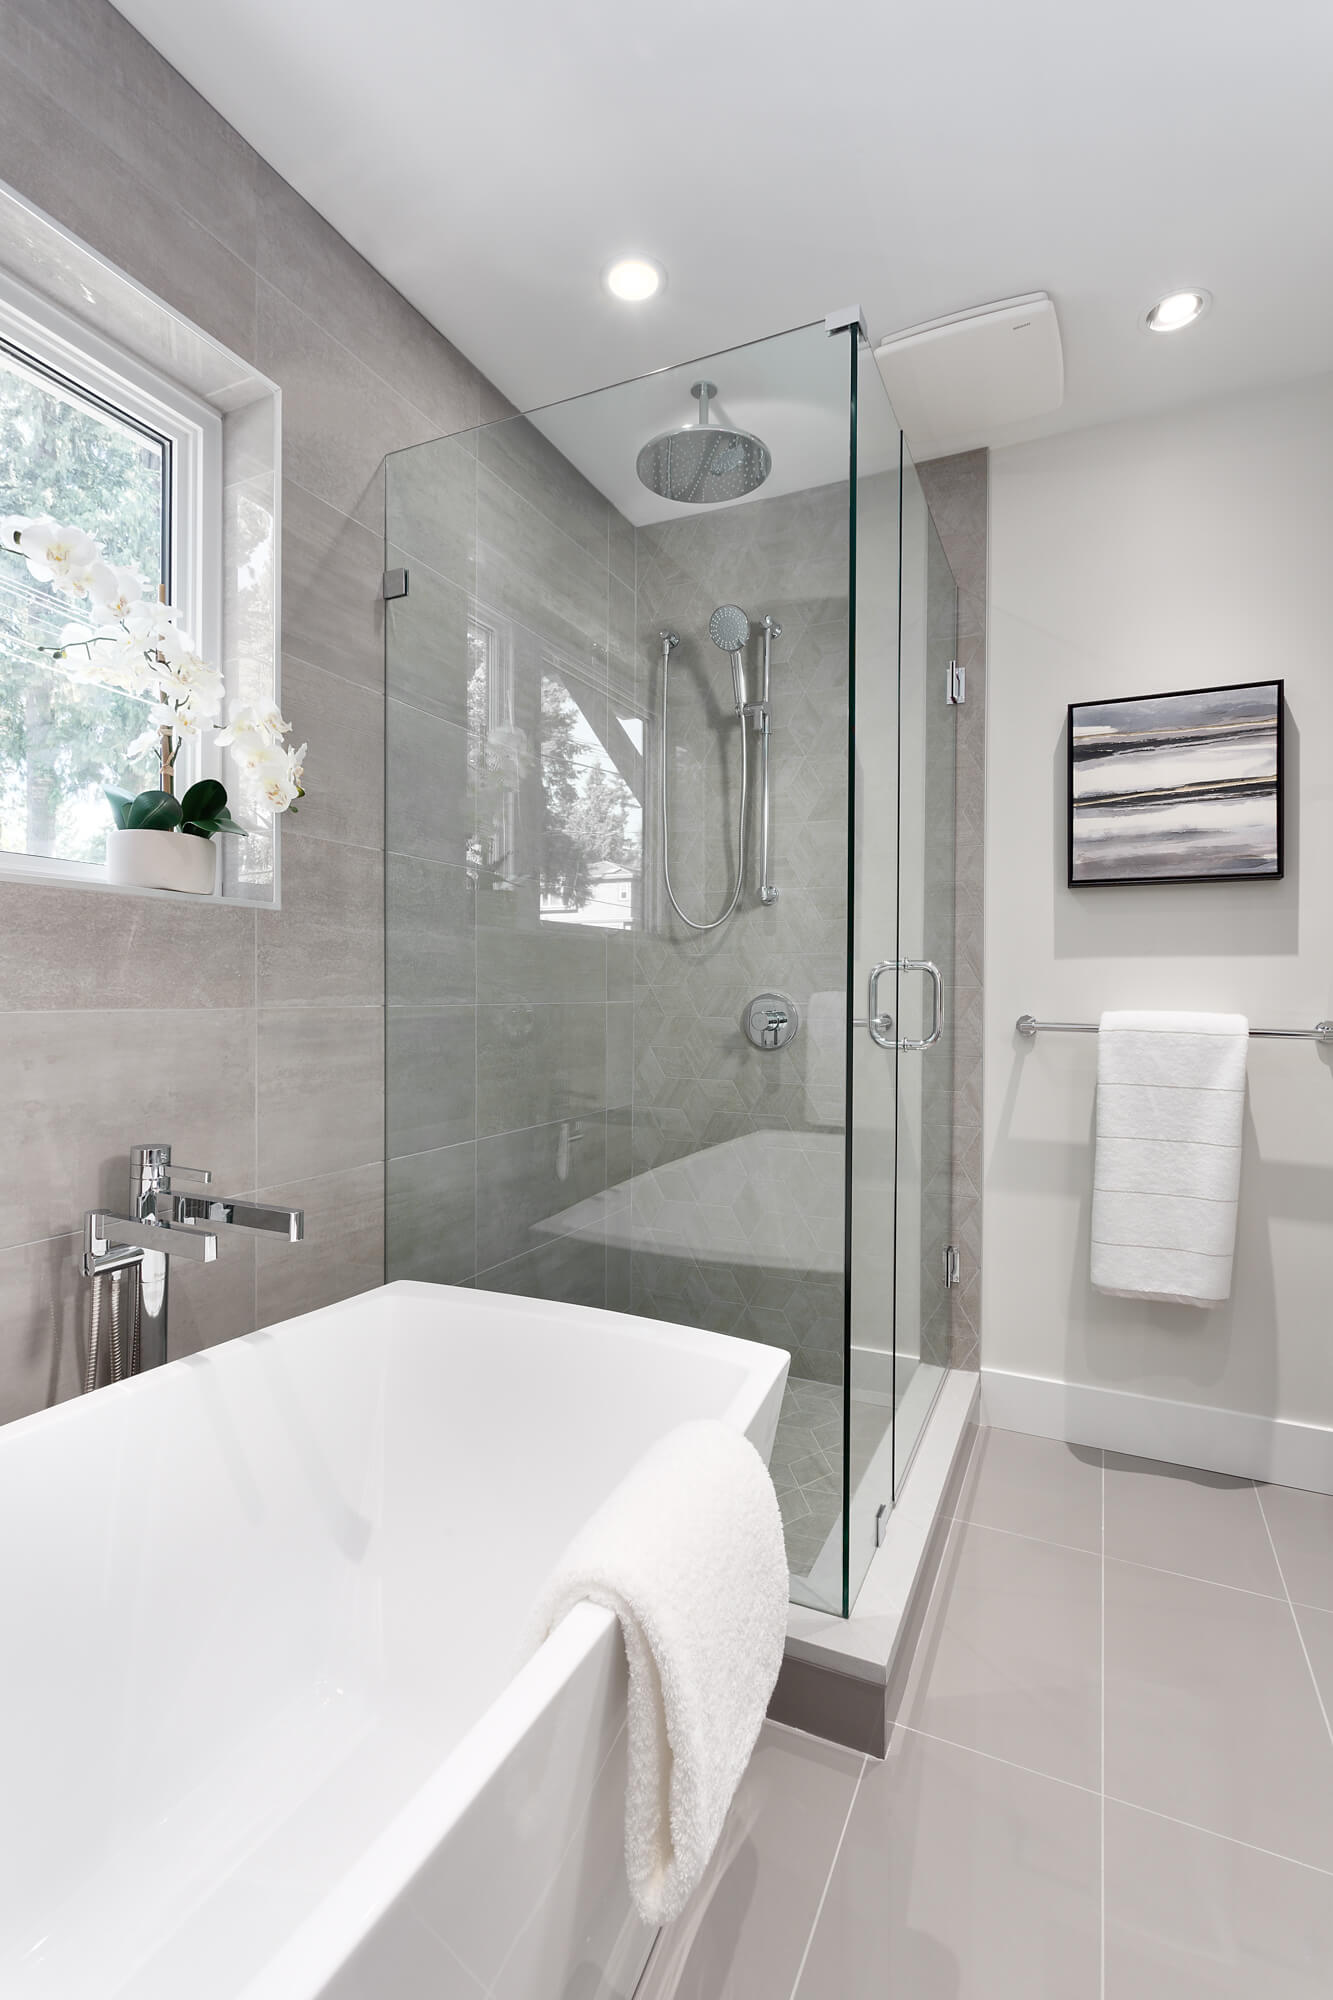 Walk-in Shower with Glass Walls and Stand Alone Tub